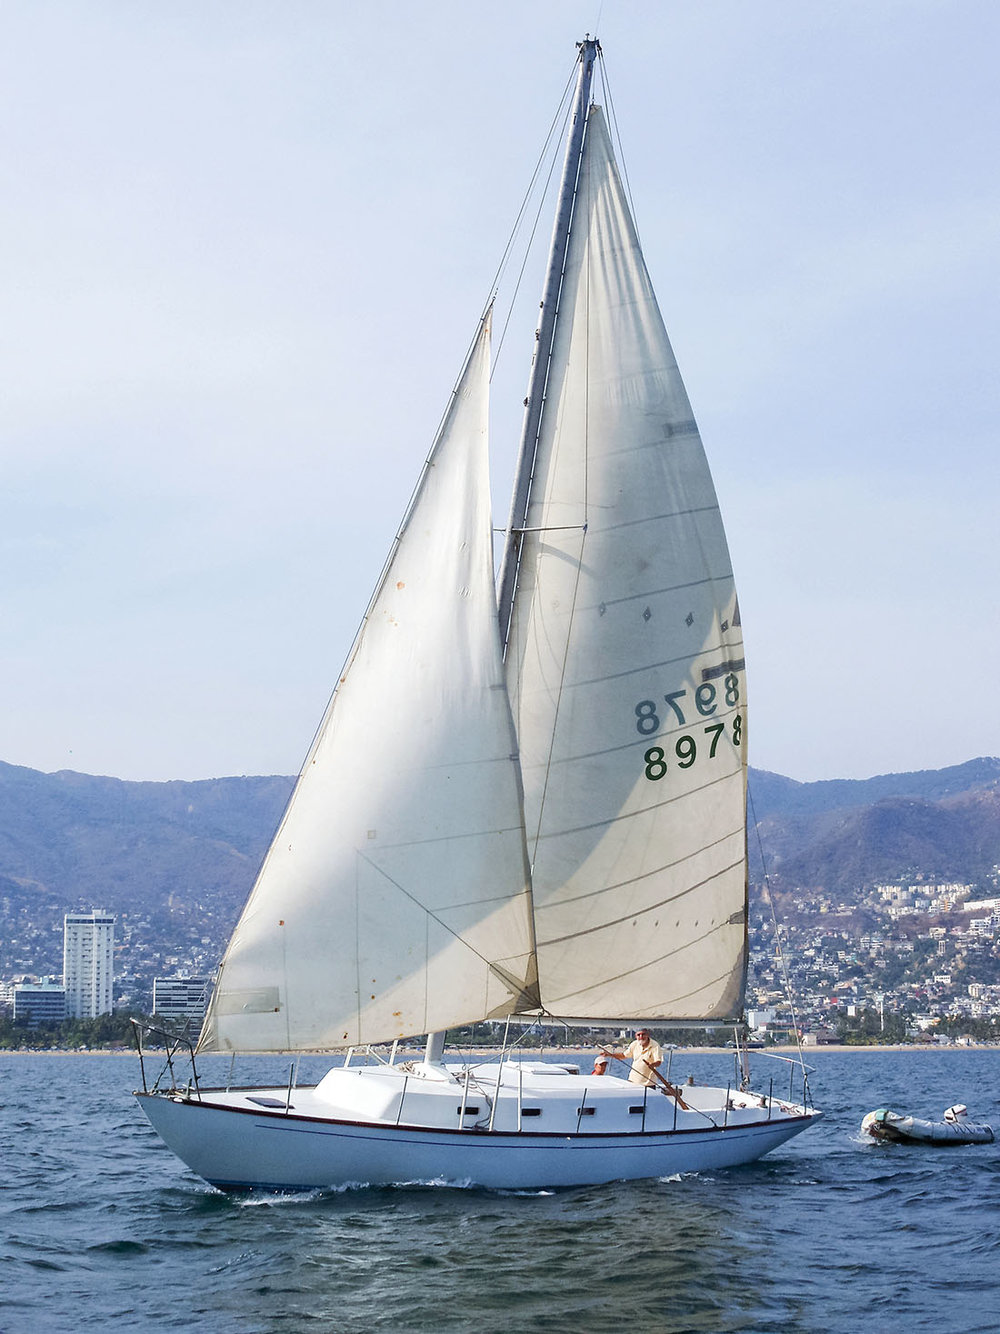 A sailboat cruises around Acapulco Bay; Photoman29 / shutterstock.com